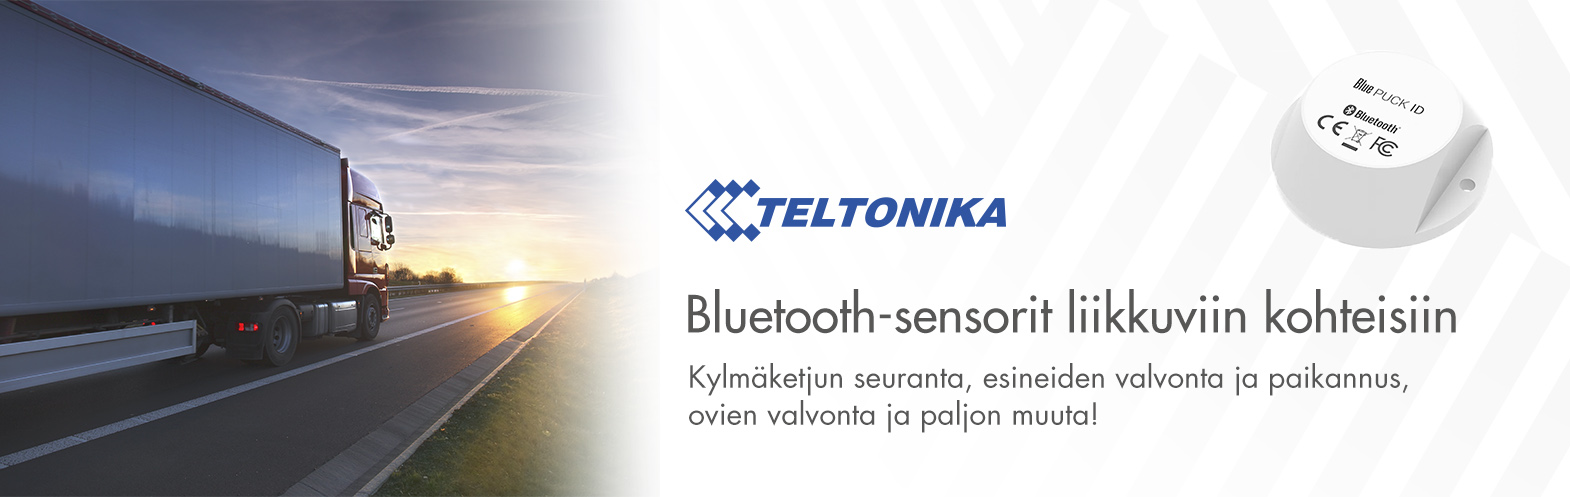 Teltonika Bluetooth